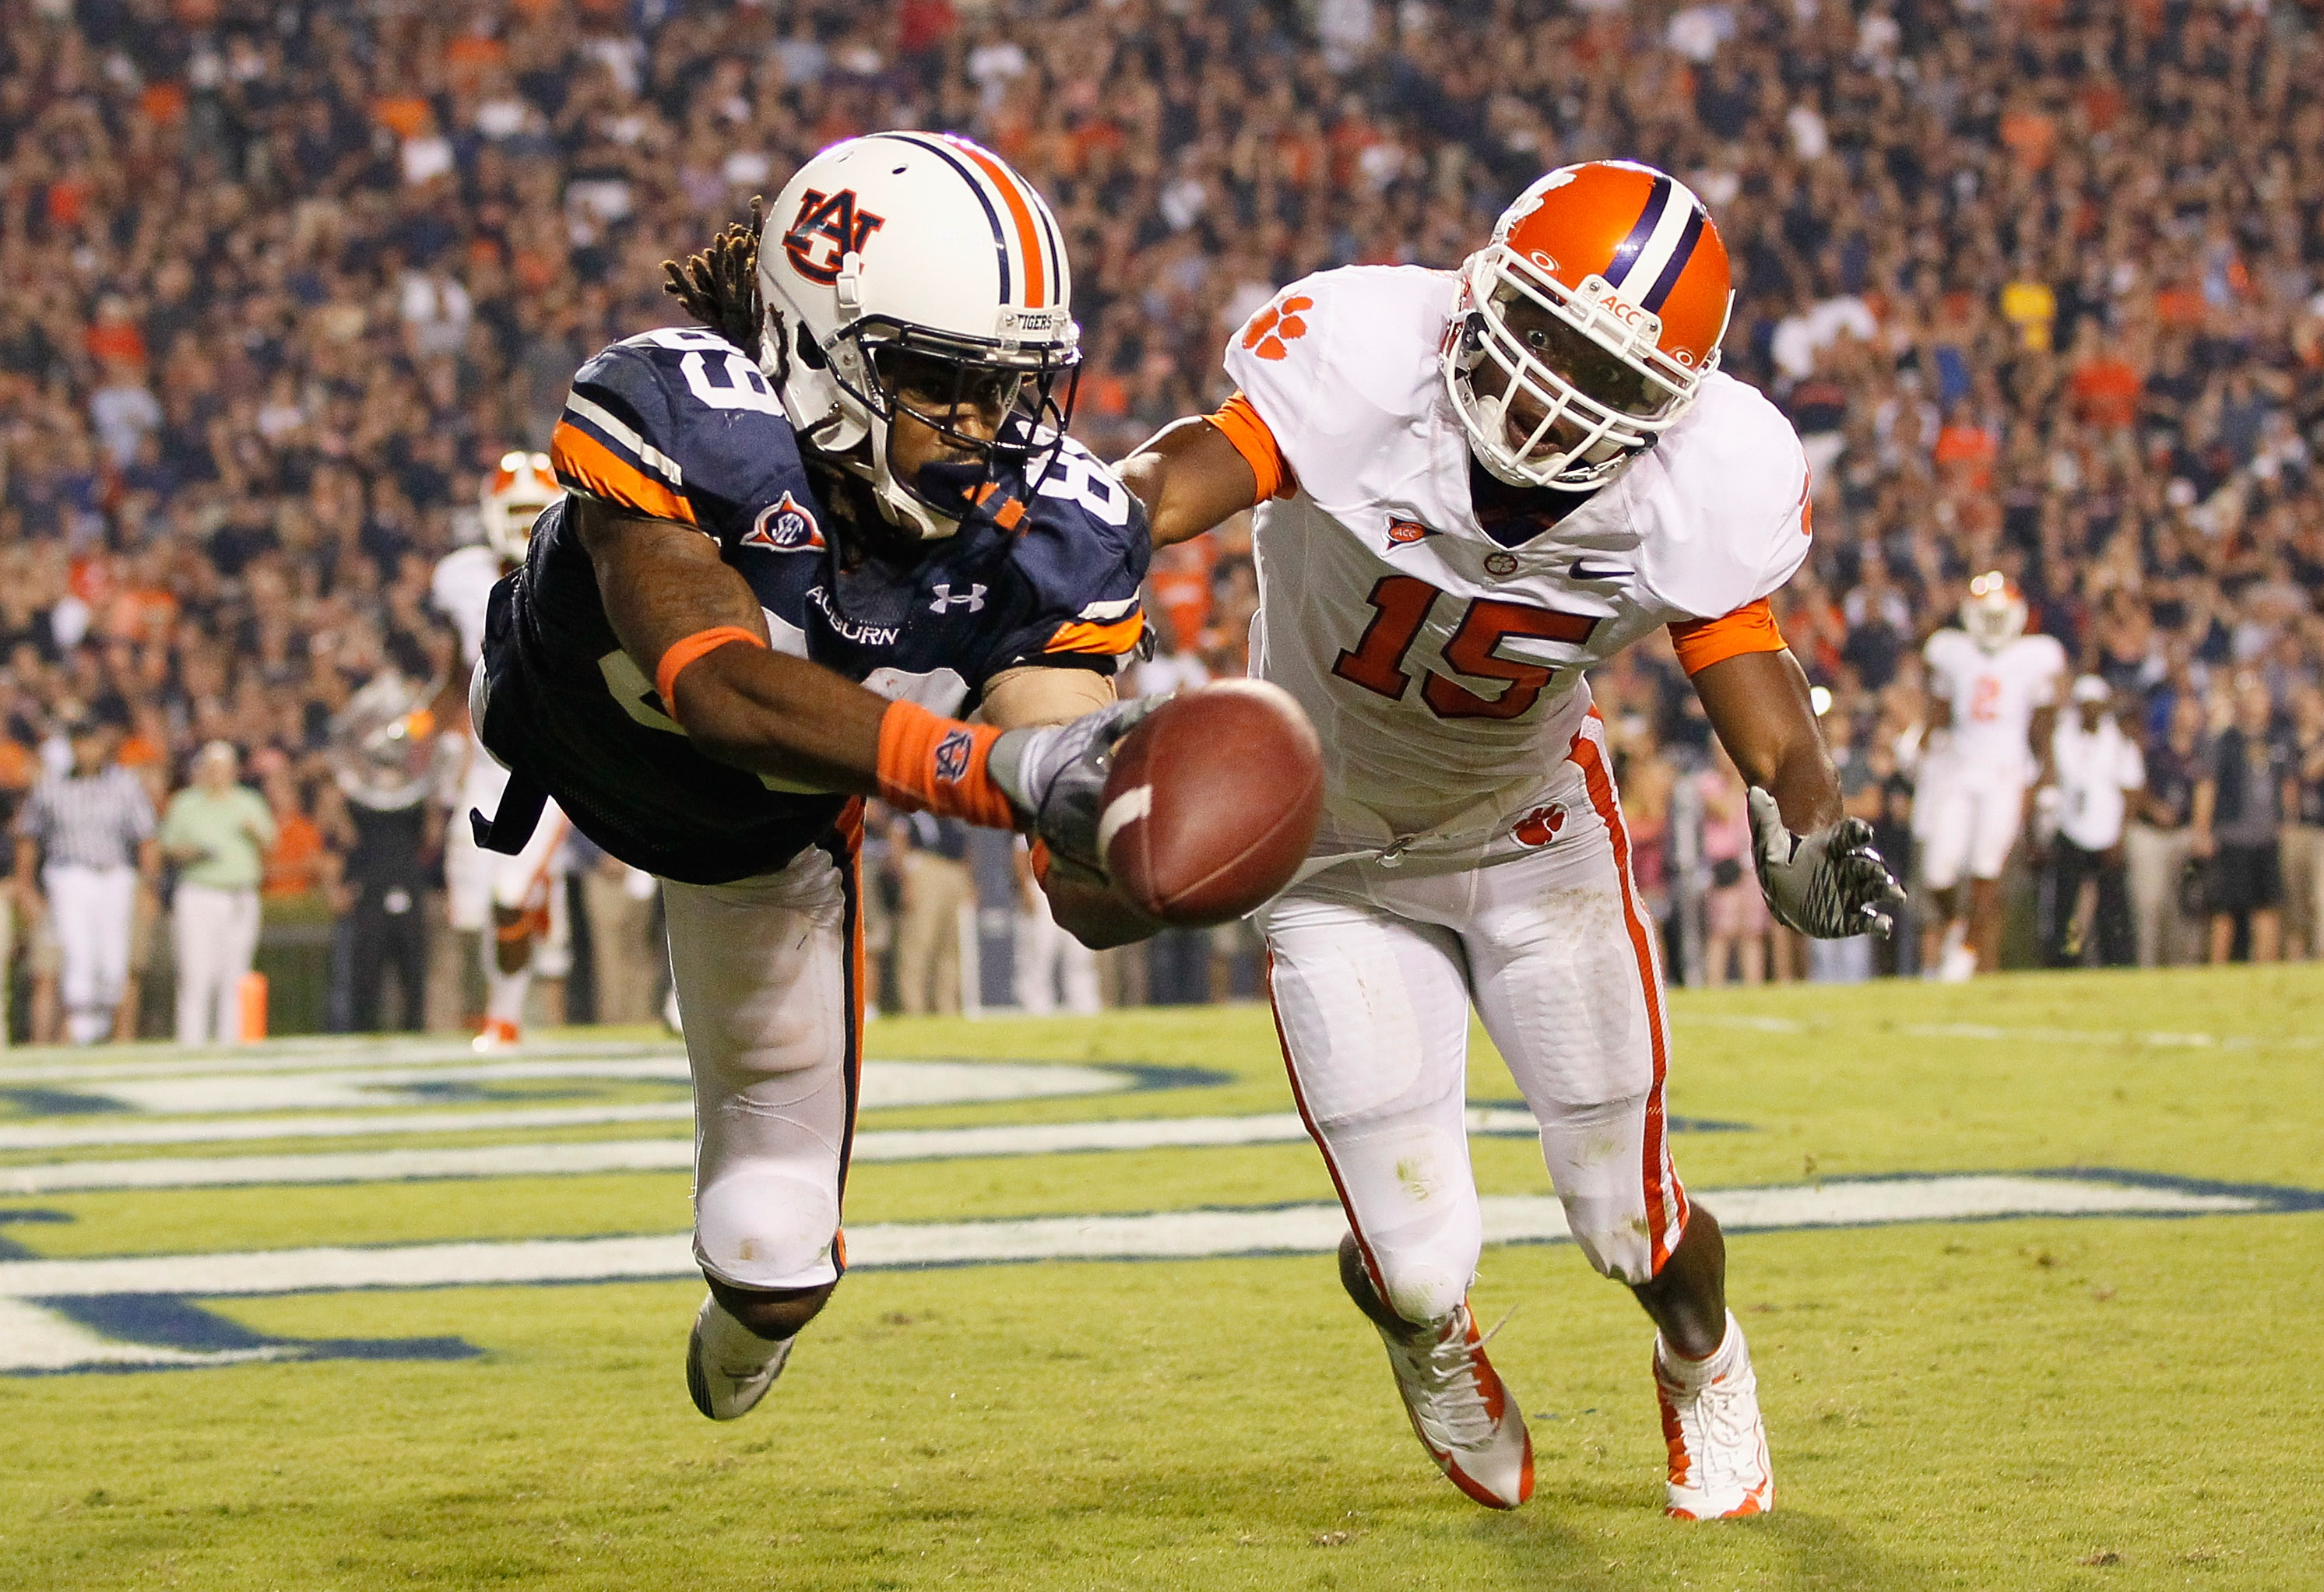 AUBURN, AL - SEPTEMBER 18:  Darvin Adams #89 of the Auburn Tigers fails to pull in this touchdown reception in overtime against Coty Sensabaugh #15 of the Clemson Tigers at Jordan-Hare Stadium on September 18, 2010 in Auburn, Alabama.  (Photo by Kevin C.